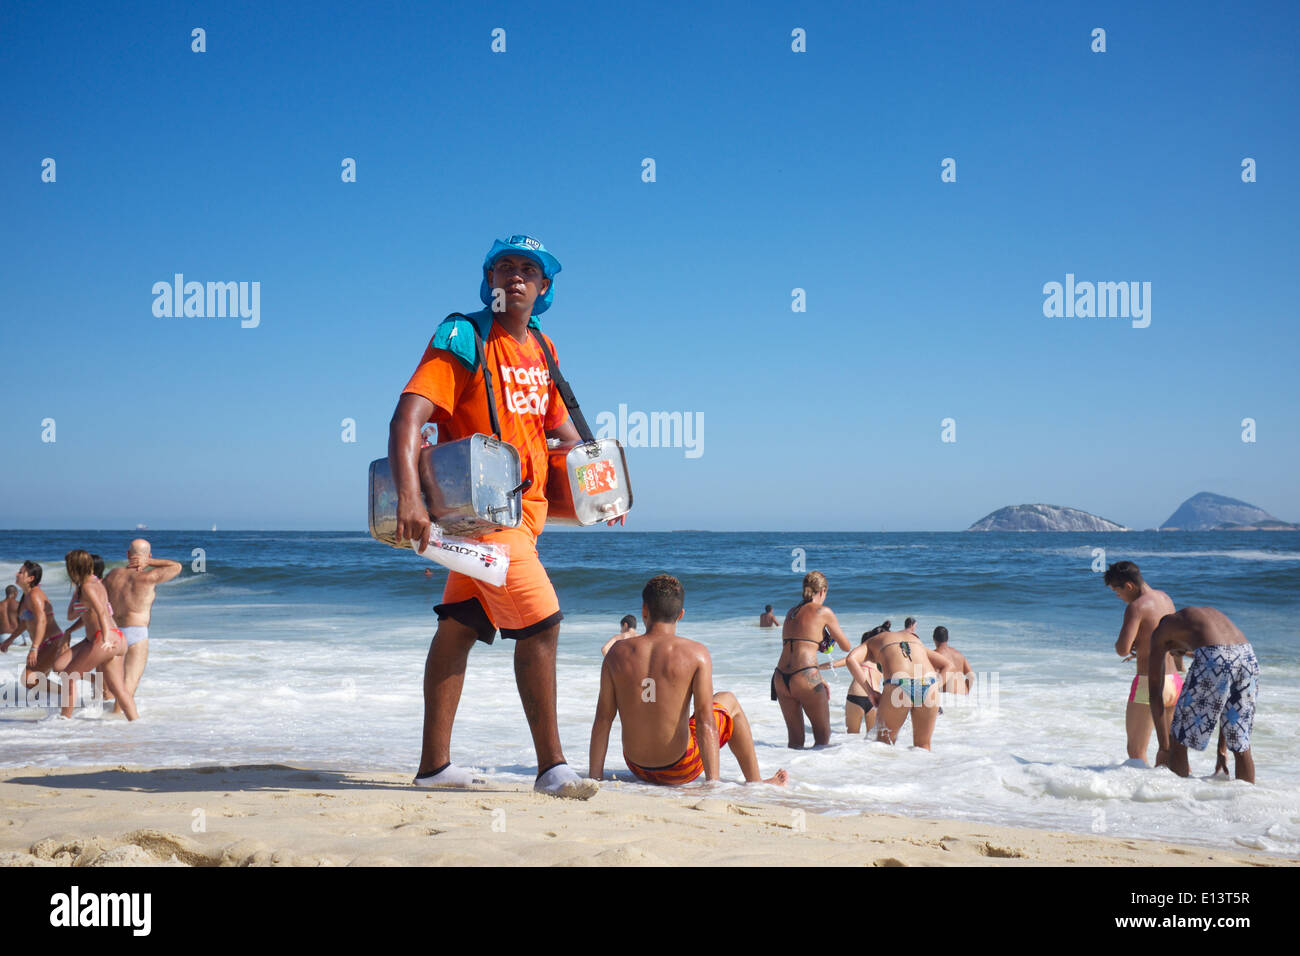 RIO DE JANEIRO, BRAZIL - JANUARY 24, 2014: Brazilian beach vendor selling snacks and Mate Leao, a brand of iced - Stock Image